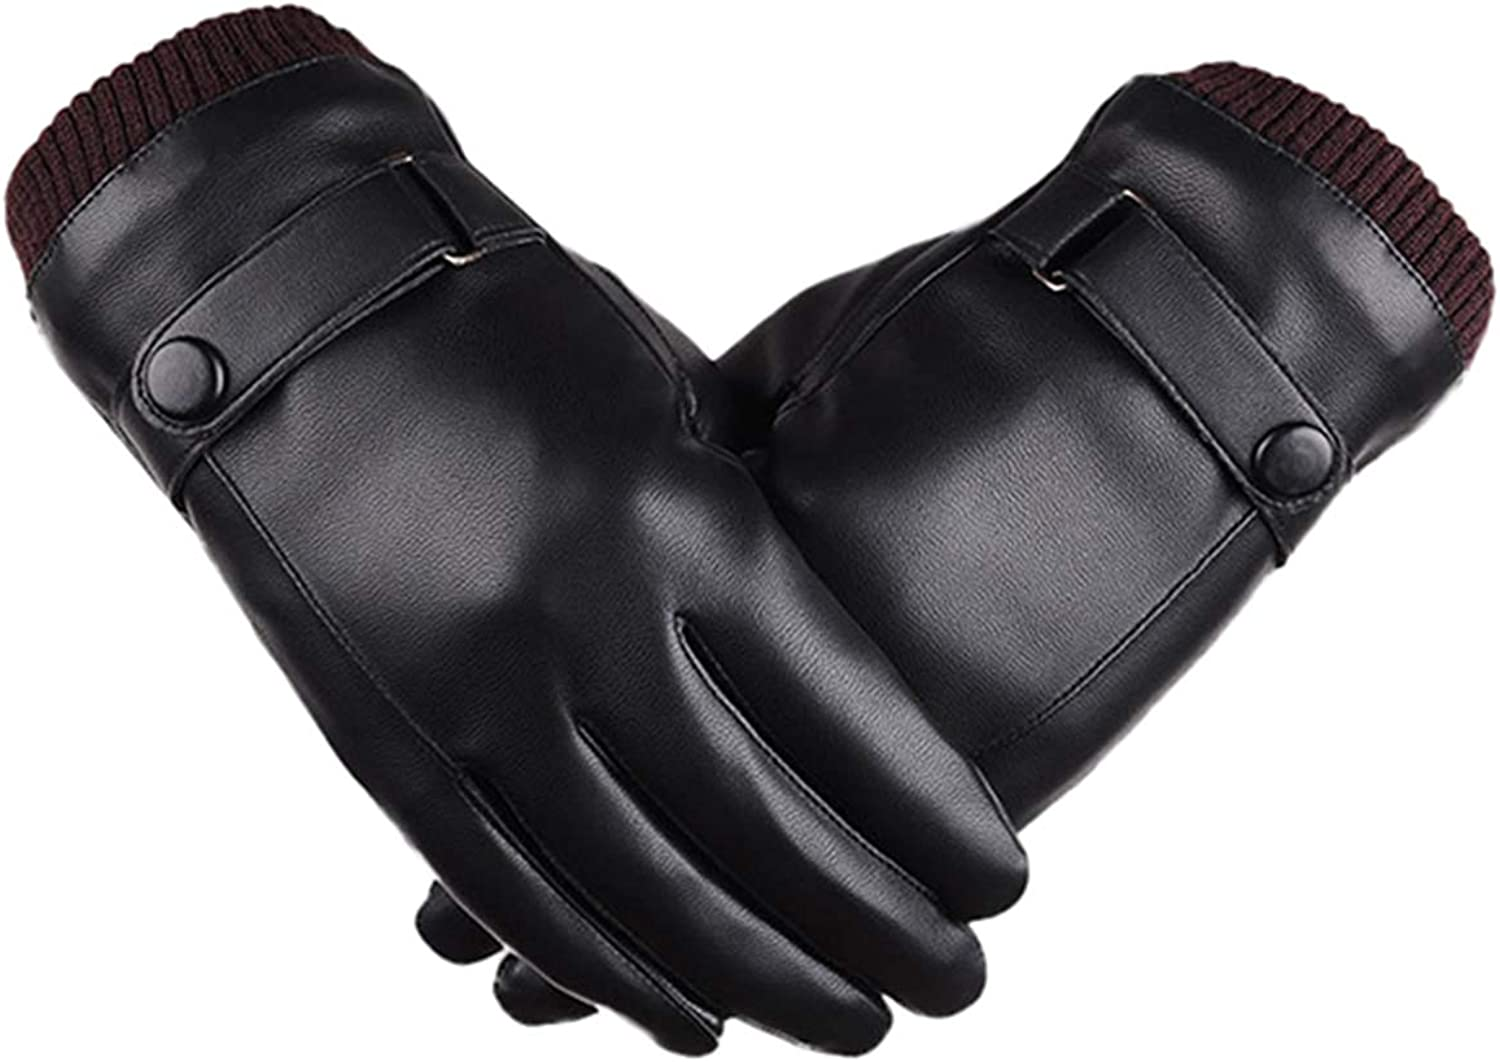 YOINS Men's Luxury PU Leather Warm Winter Touchscreen Texting Black Gloves with Wool/Cashmere/Fleece Blend Lining Cuff